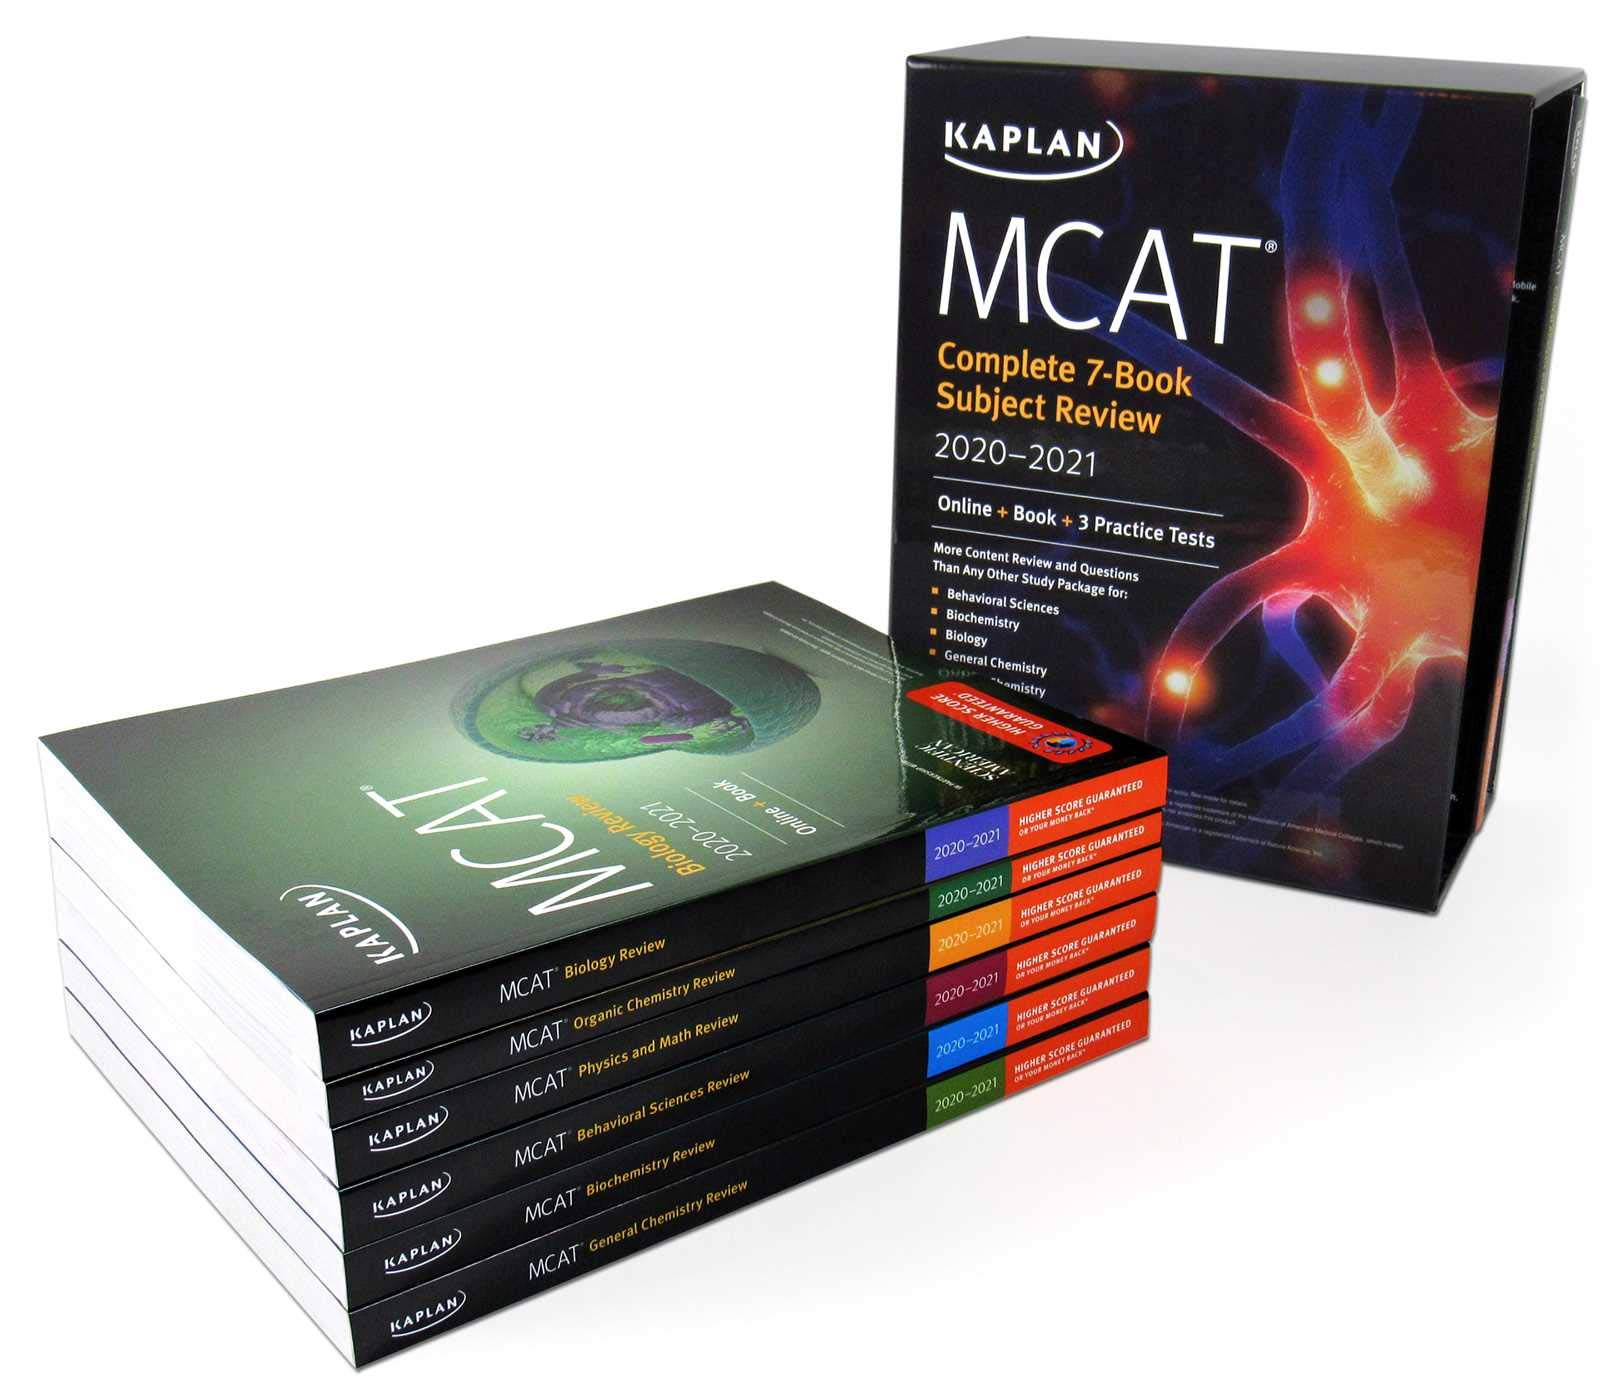 MCAT Complete 7-Book Subject Review 2020-2021: Online + Book + 3 Practice Tests (Kaplan Test Prep) by Kaplan Publishing